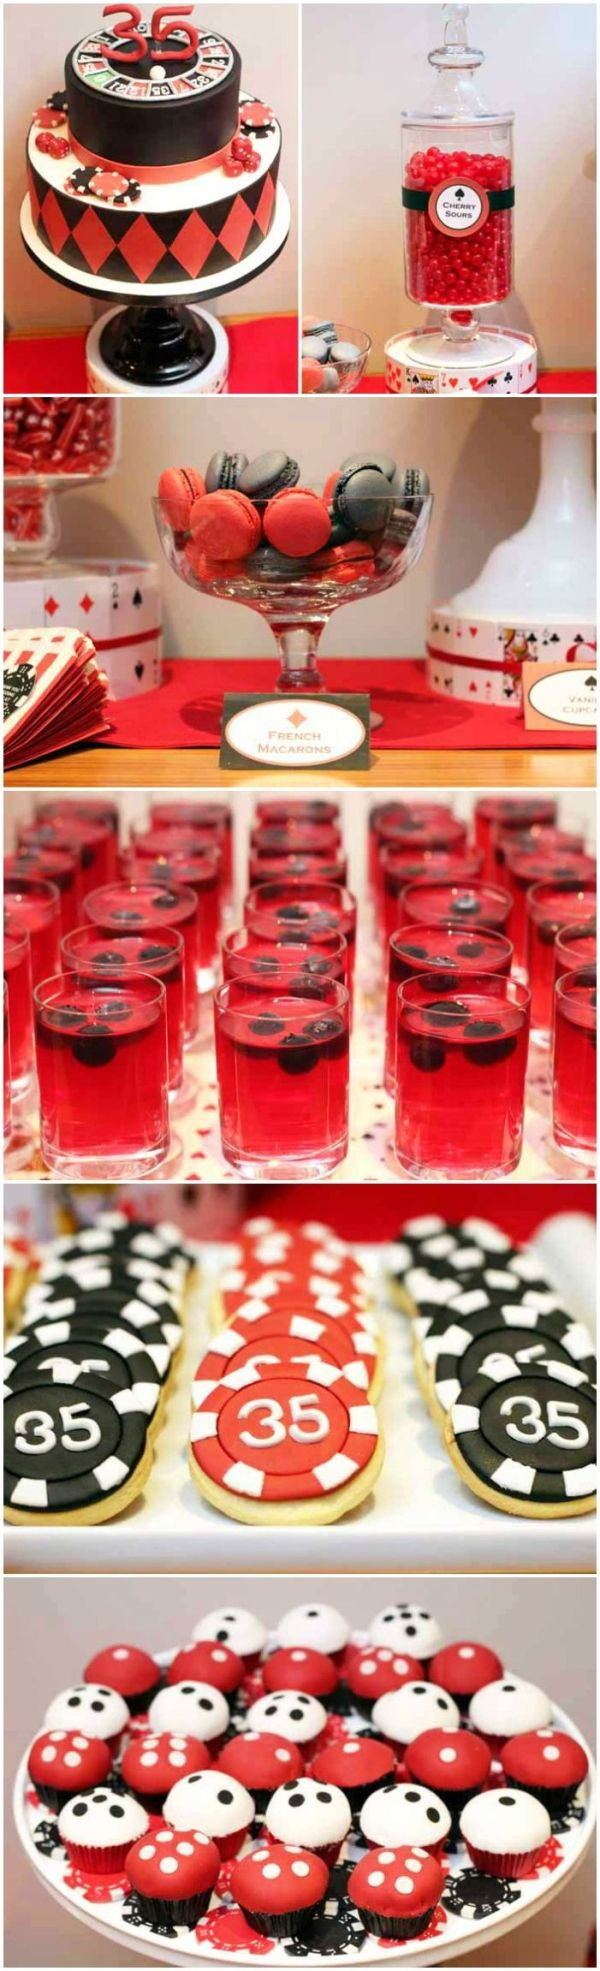 Party Theme ● Poker Party Dessert Table by delia